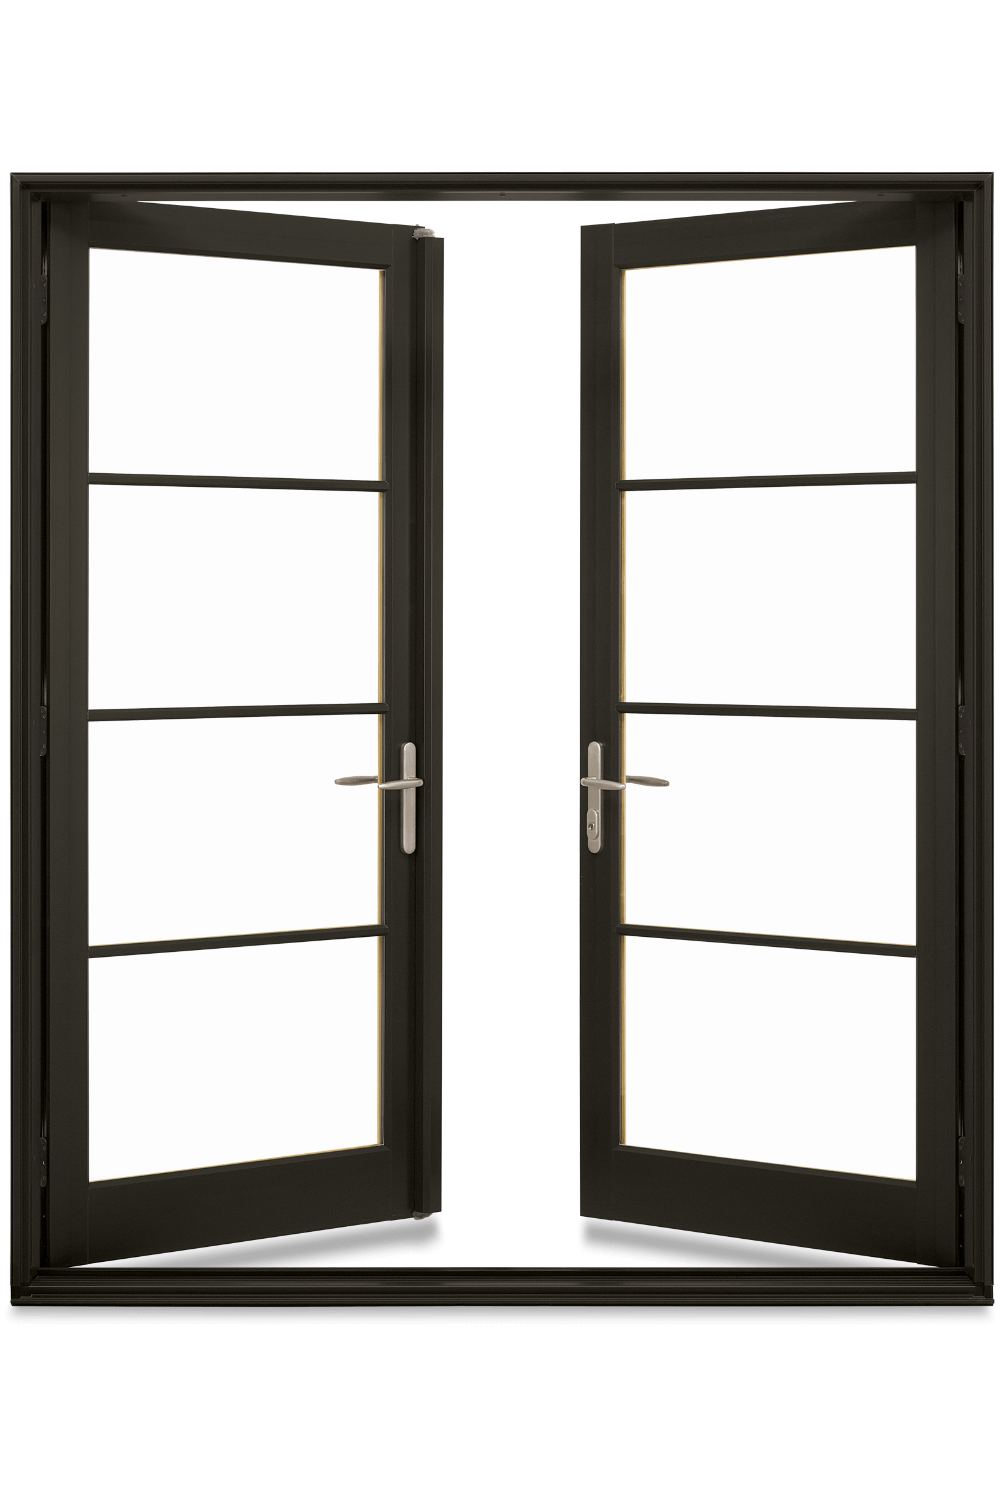 Wood Fiberglass Inswing Outswing French Doors Elevate Swinging